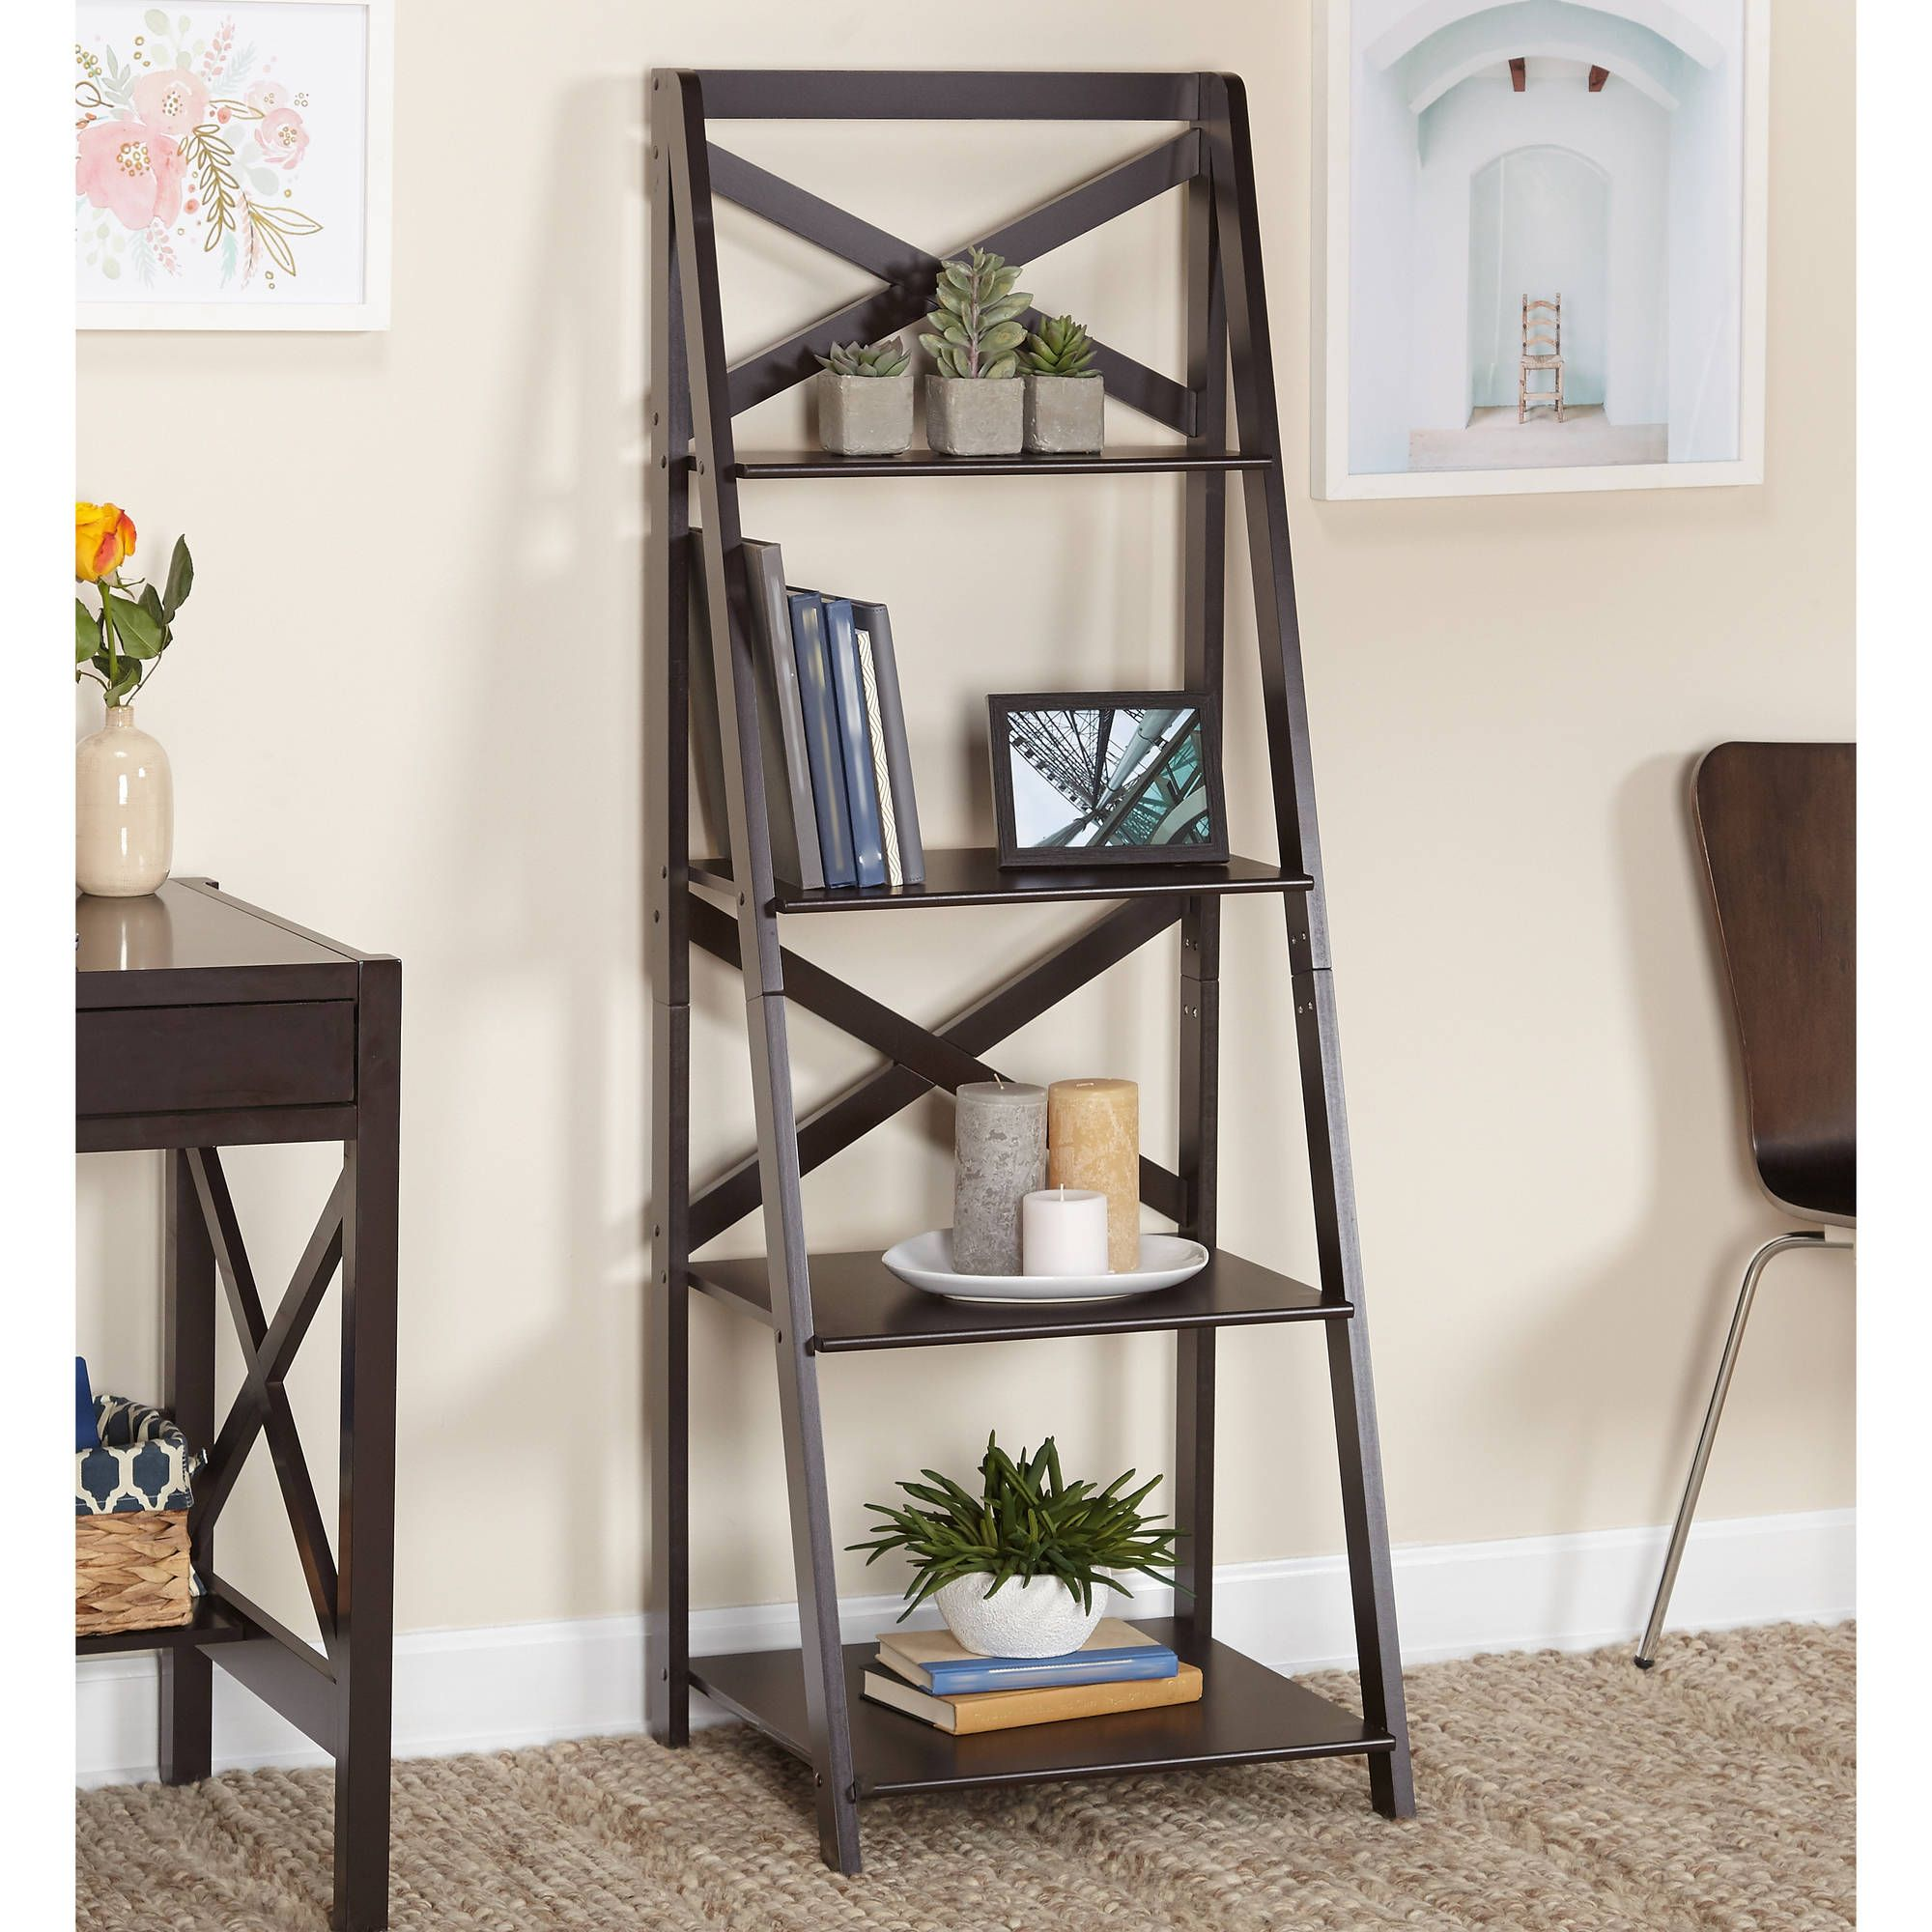 Buy Tms X 4 Tier Shelf Multiple Finishes At Walmart Com With Images Ladder Shelf Decor Home Decor Decor